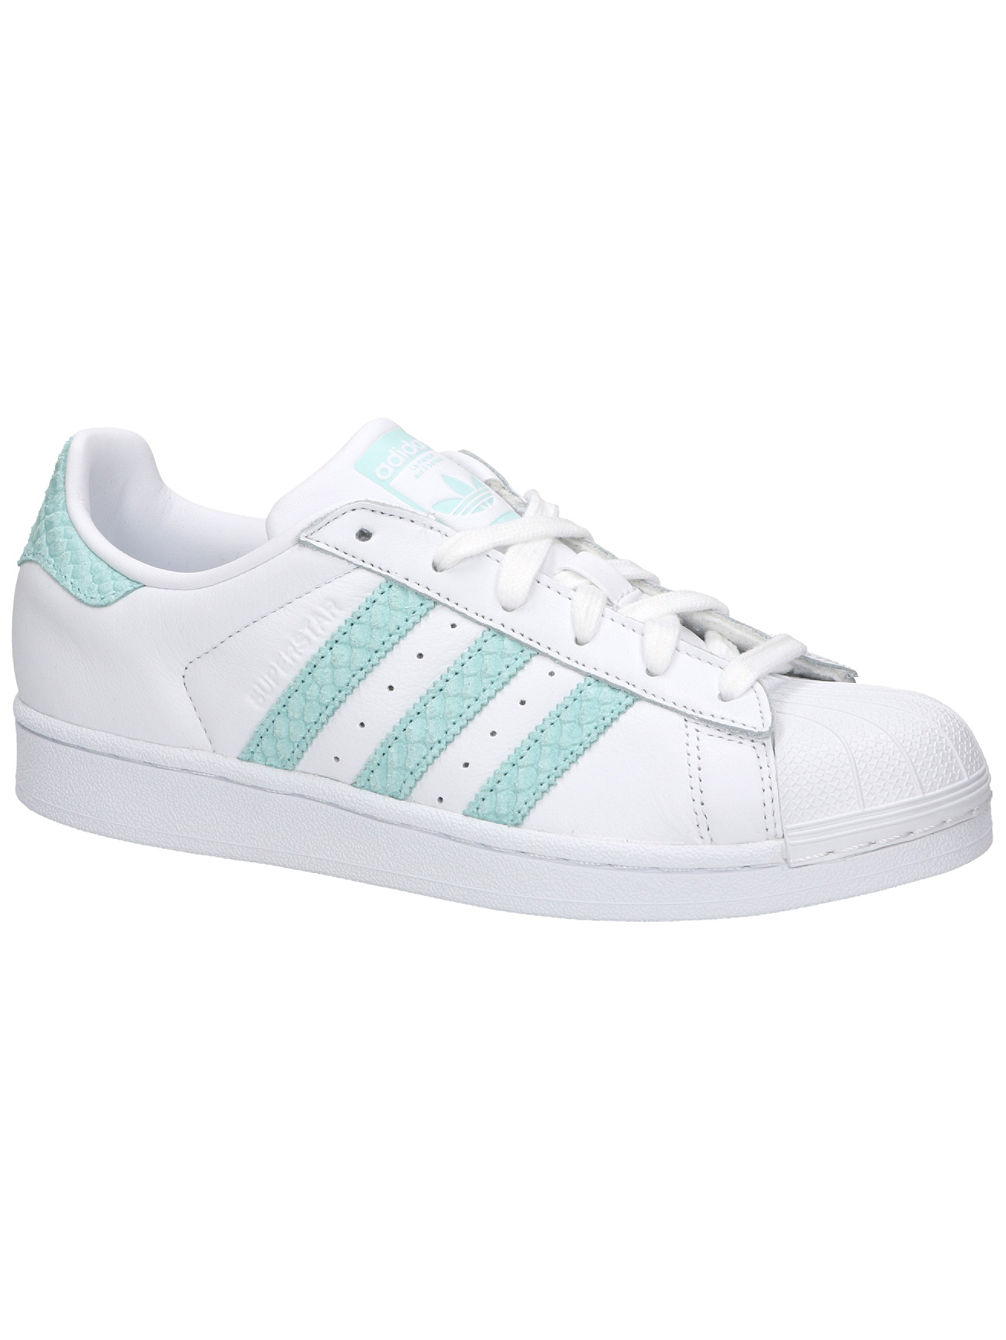 Buy adidas Originals Superstar Sneakers Women online at blue-tomato.com 1701b9803f0